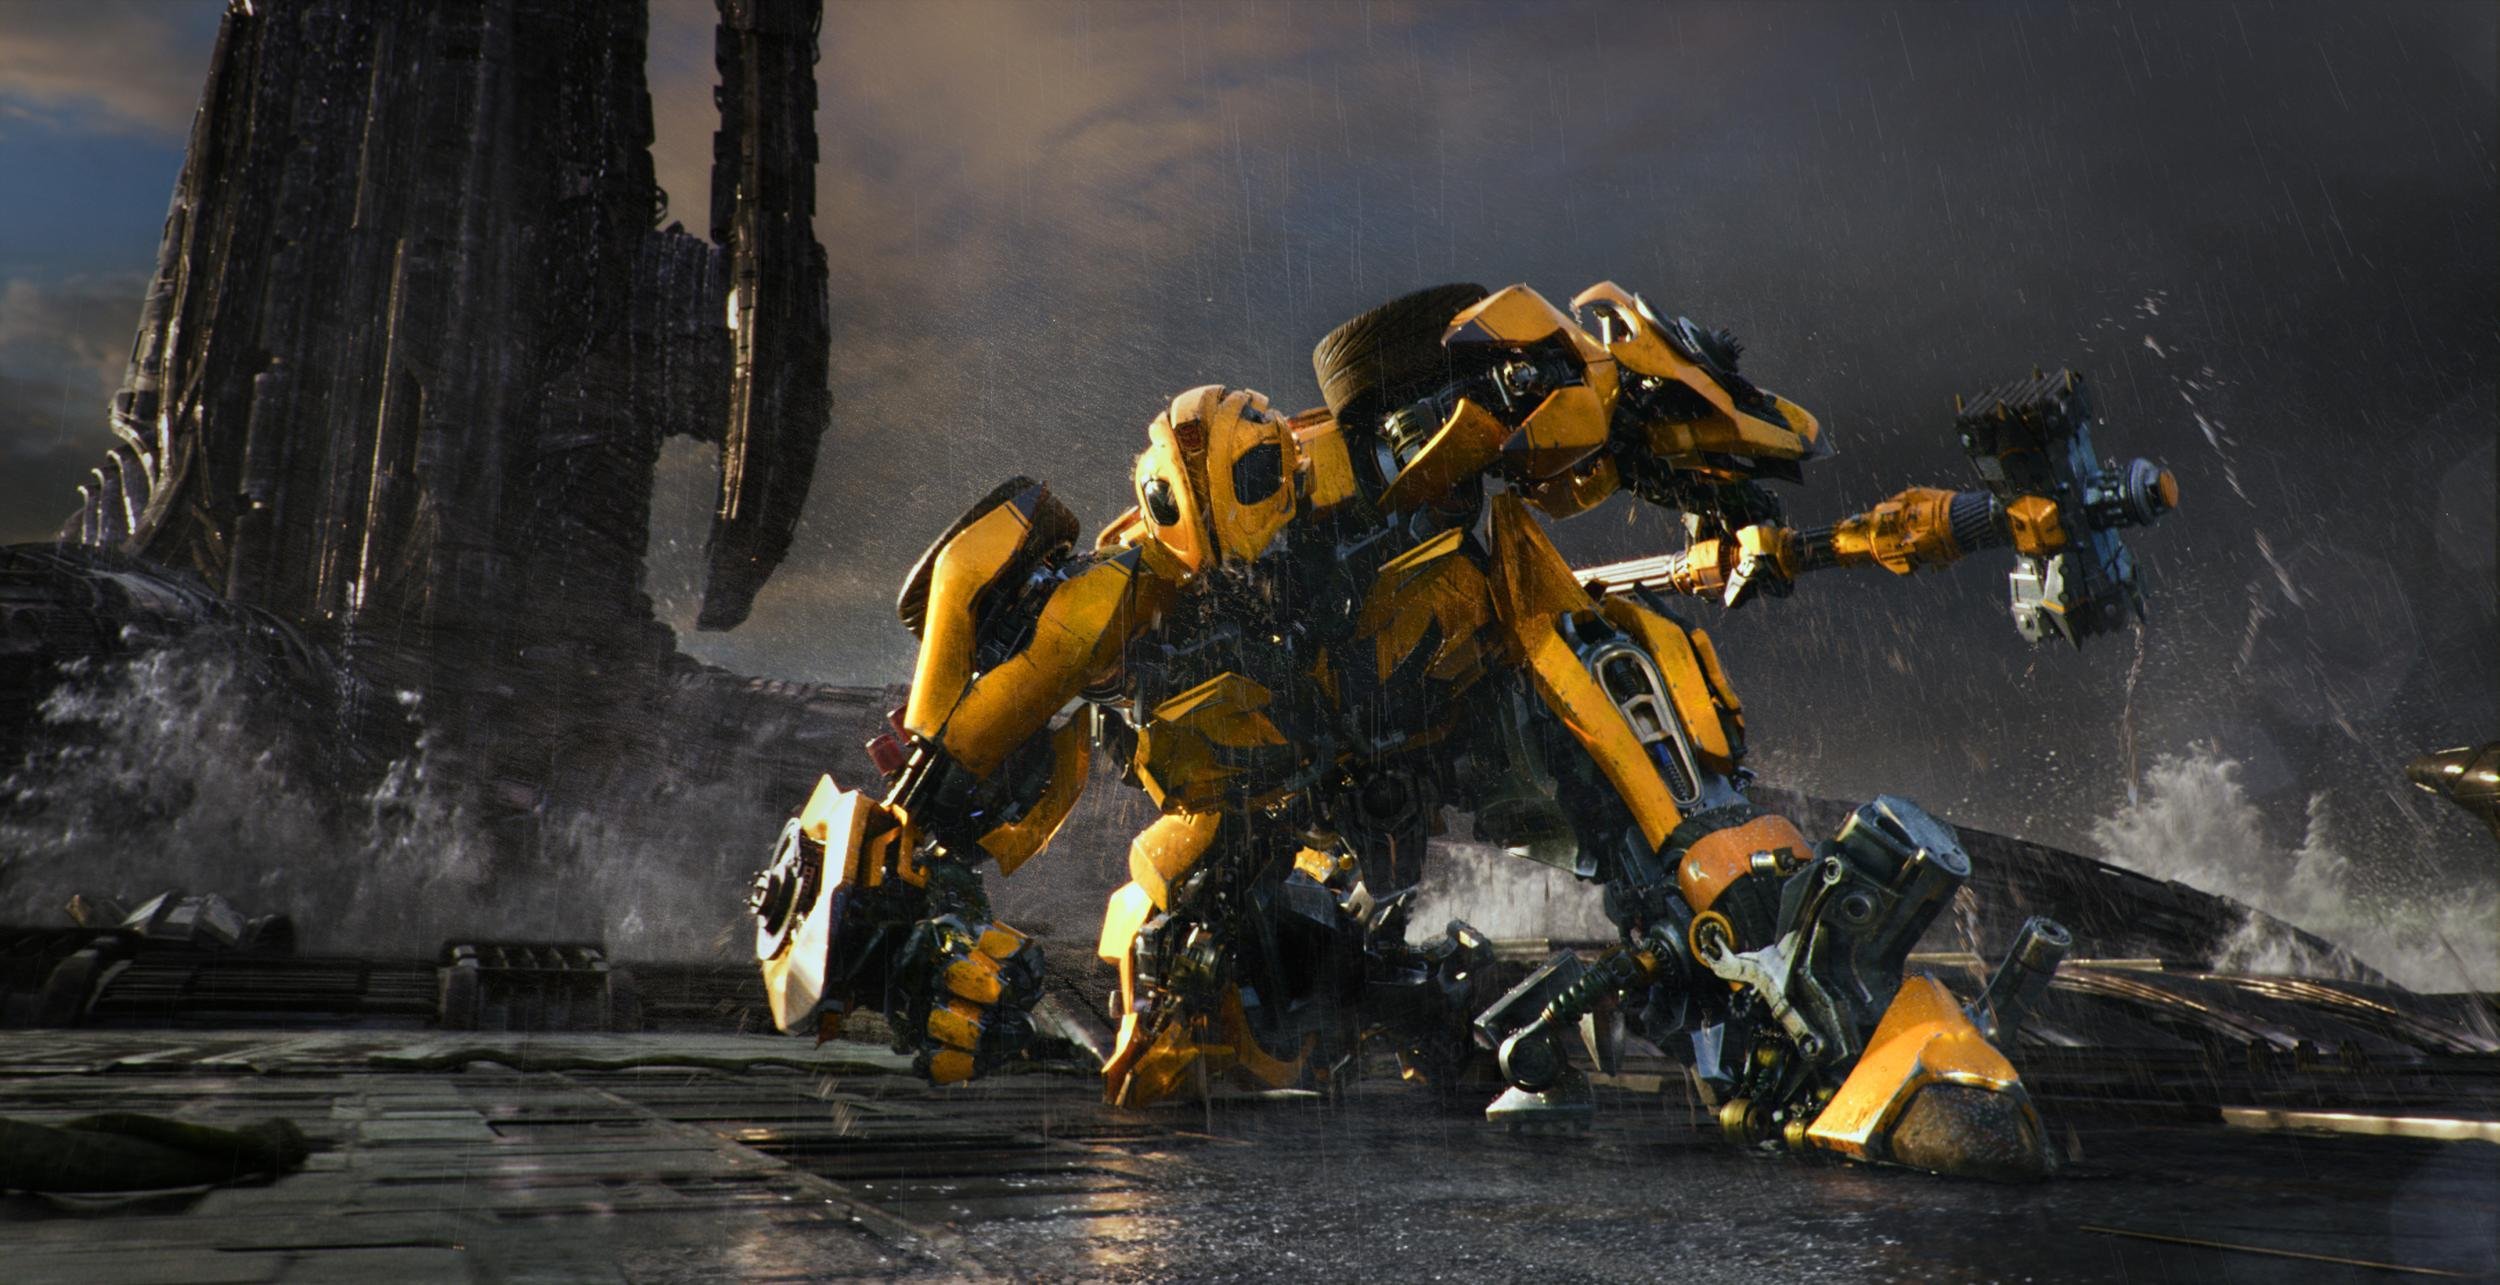 Meet the main characters of Transformers: The Last Knight